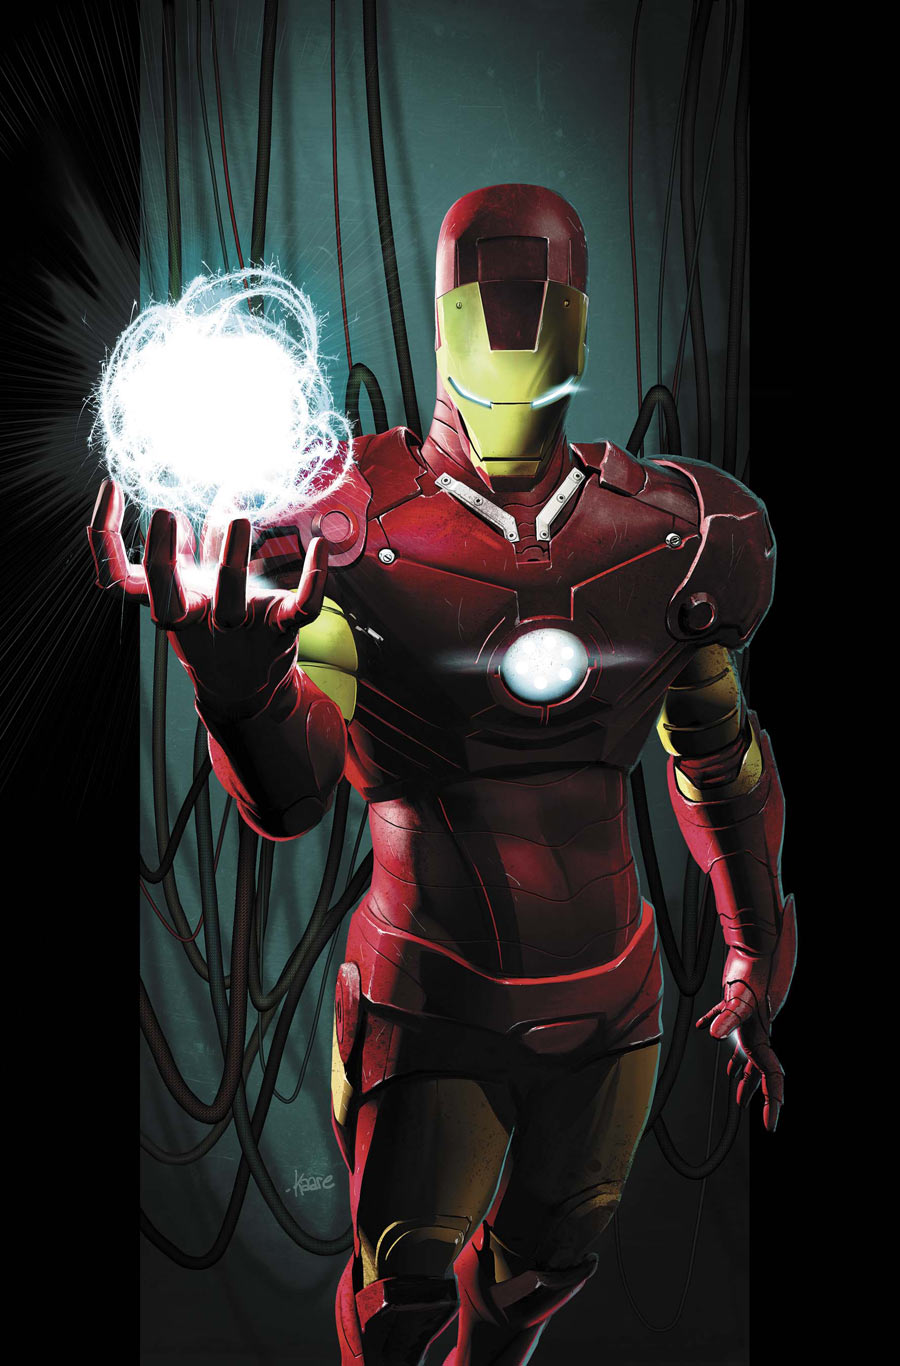 Iron man armor avengers vs new ultimates earth 1610 marvel database fandom powered by wikia - Image de iron man ...